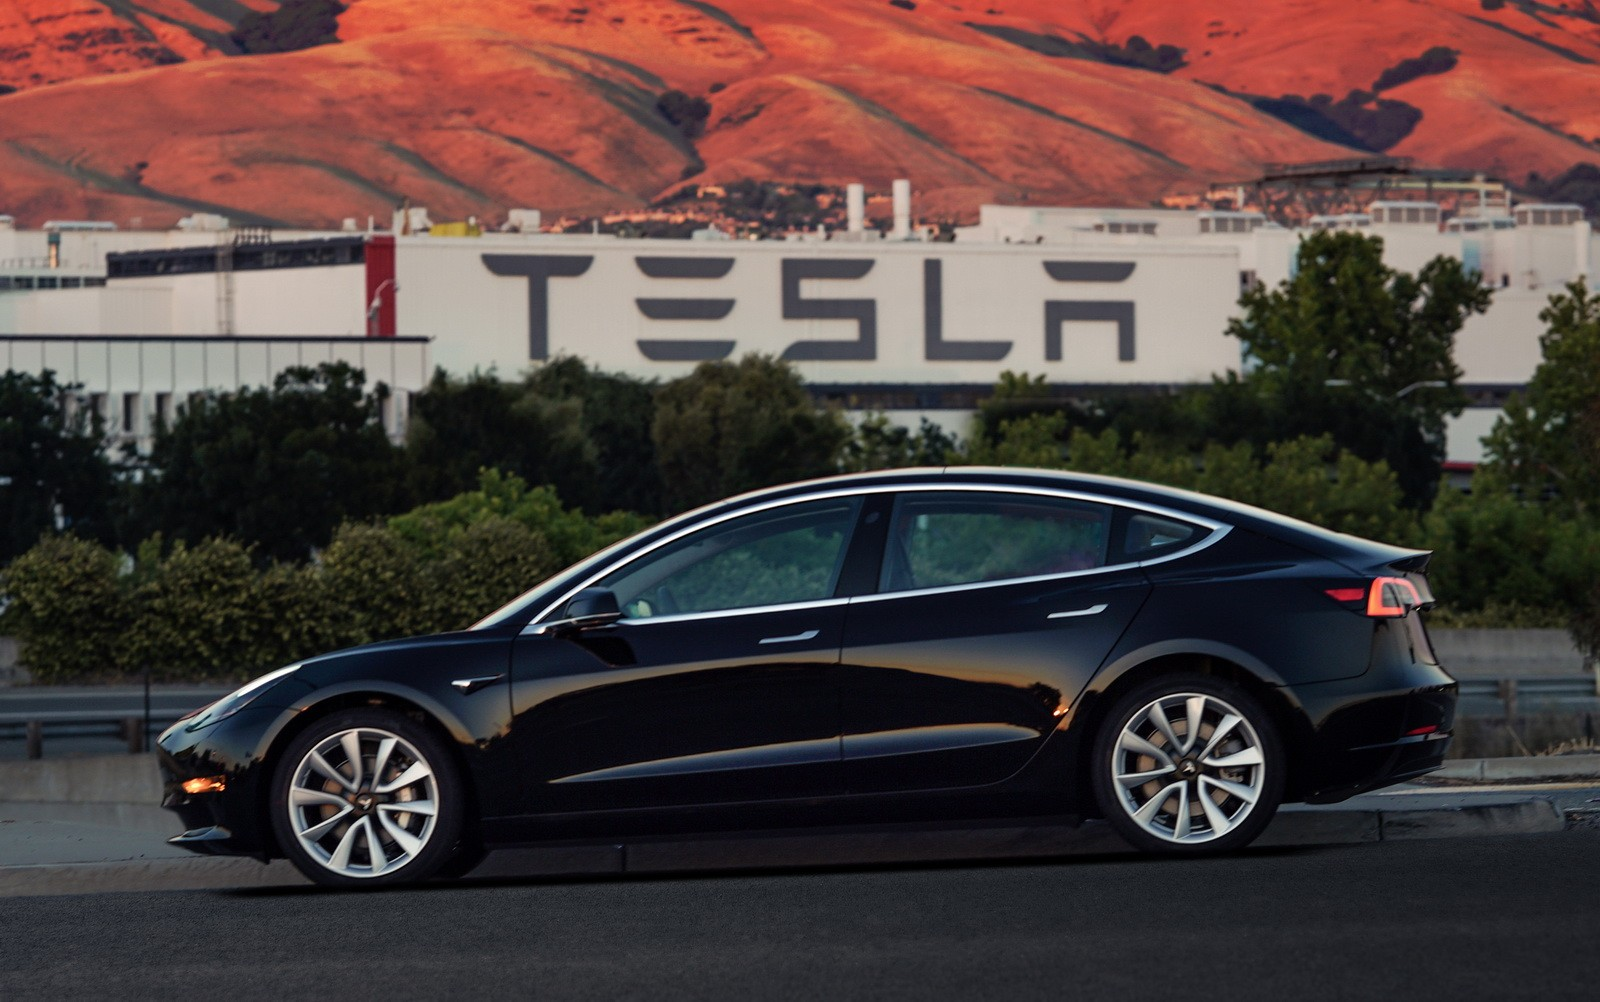 the first tesla model 3 deliveries reveal 310 mile range and other details autoevolution. Black Bedroom Furniture Sets. Home Design Ideas